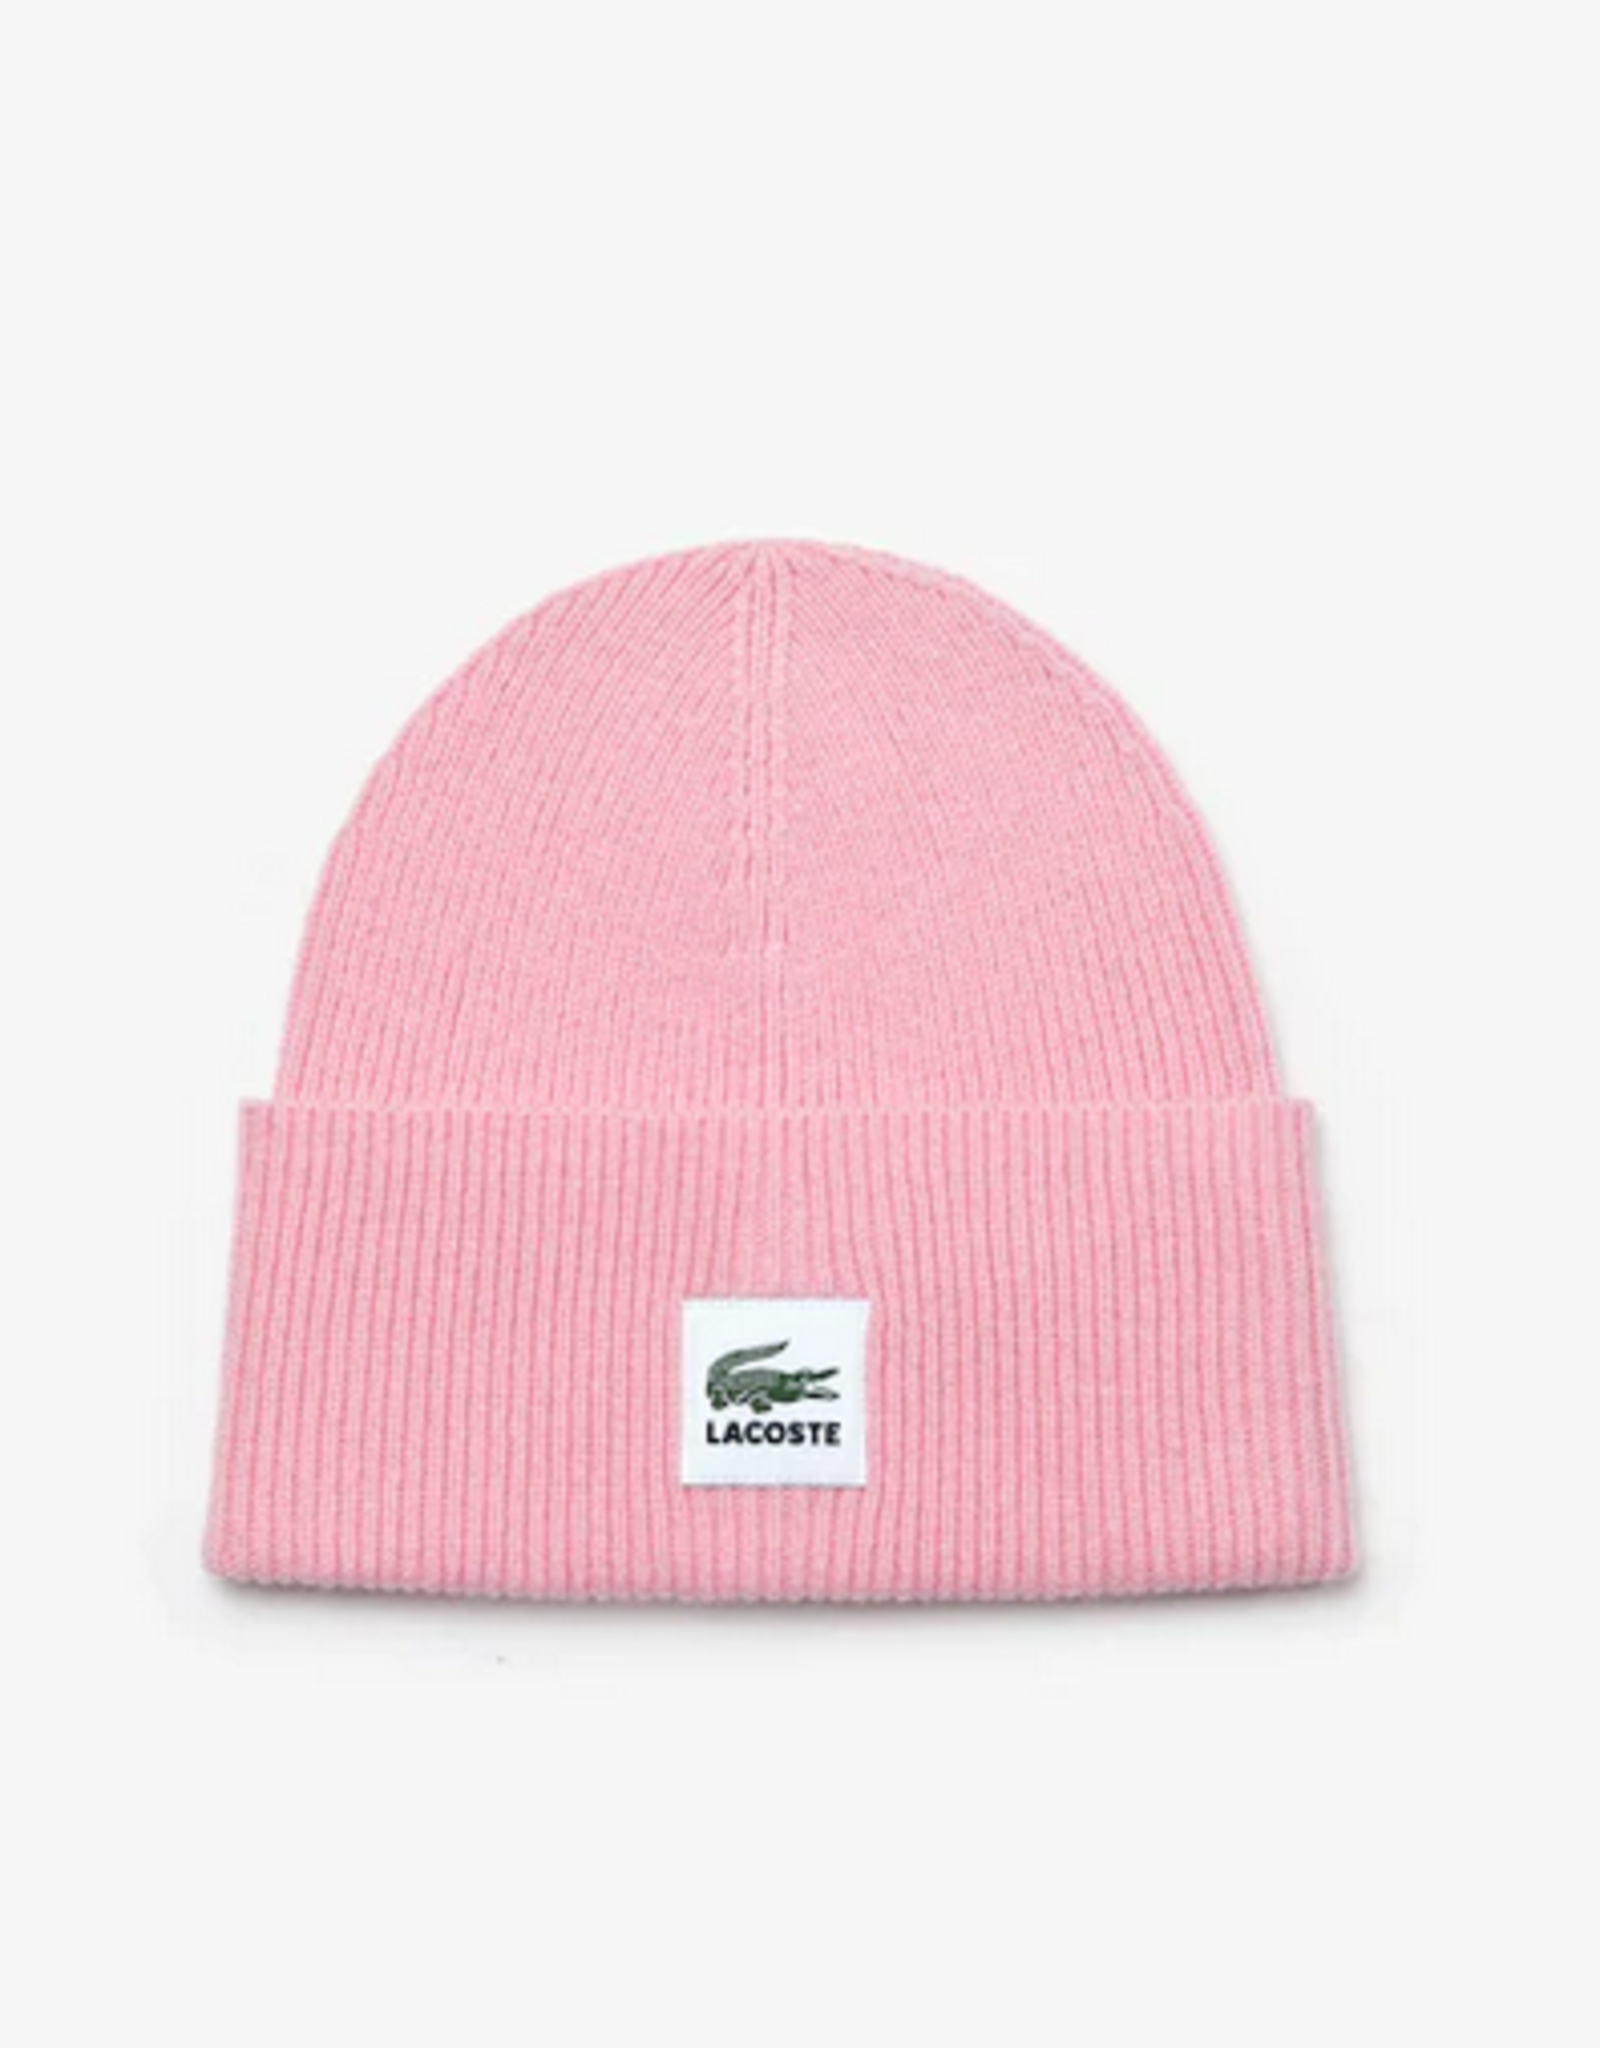 Lacoste LC TUQUE LACOSTE ROSE